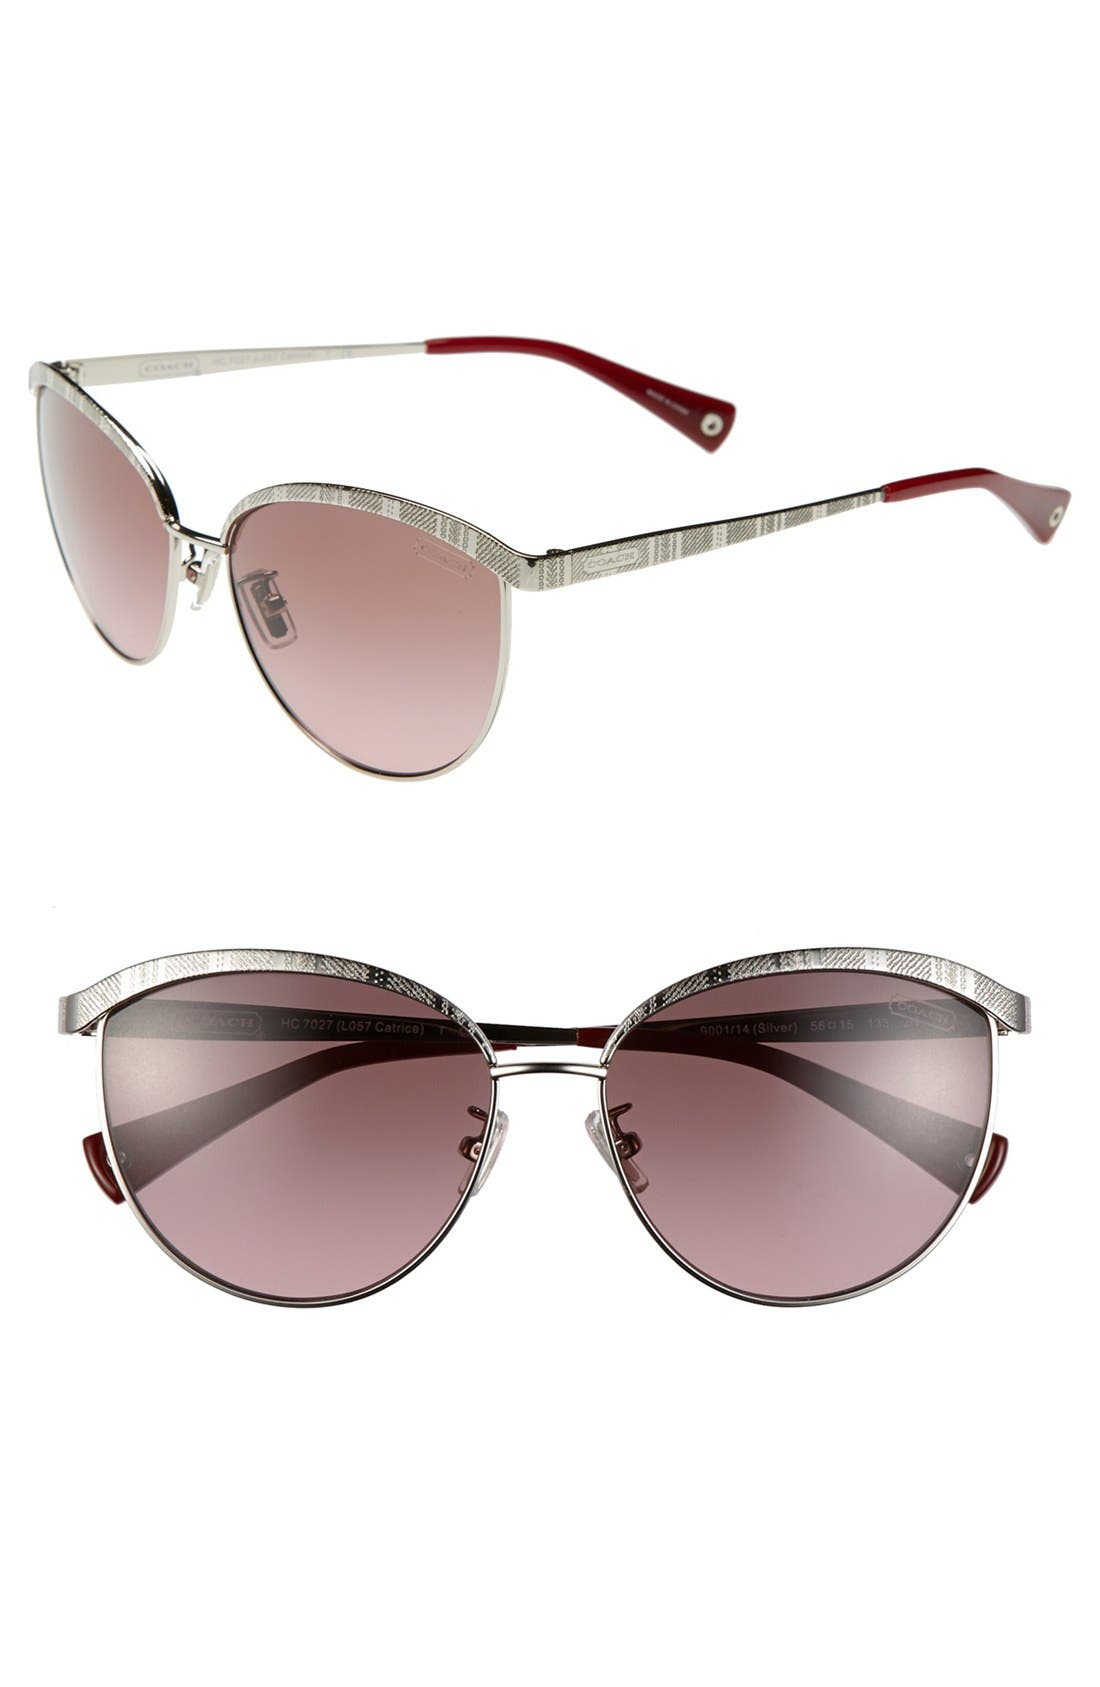 Alternate Image 1 Selected - COACH 'Pilot' 56mm Sunglasses